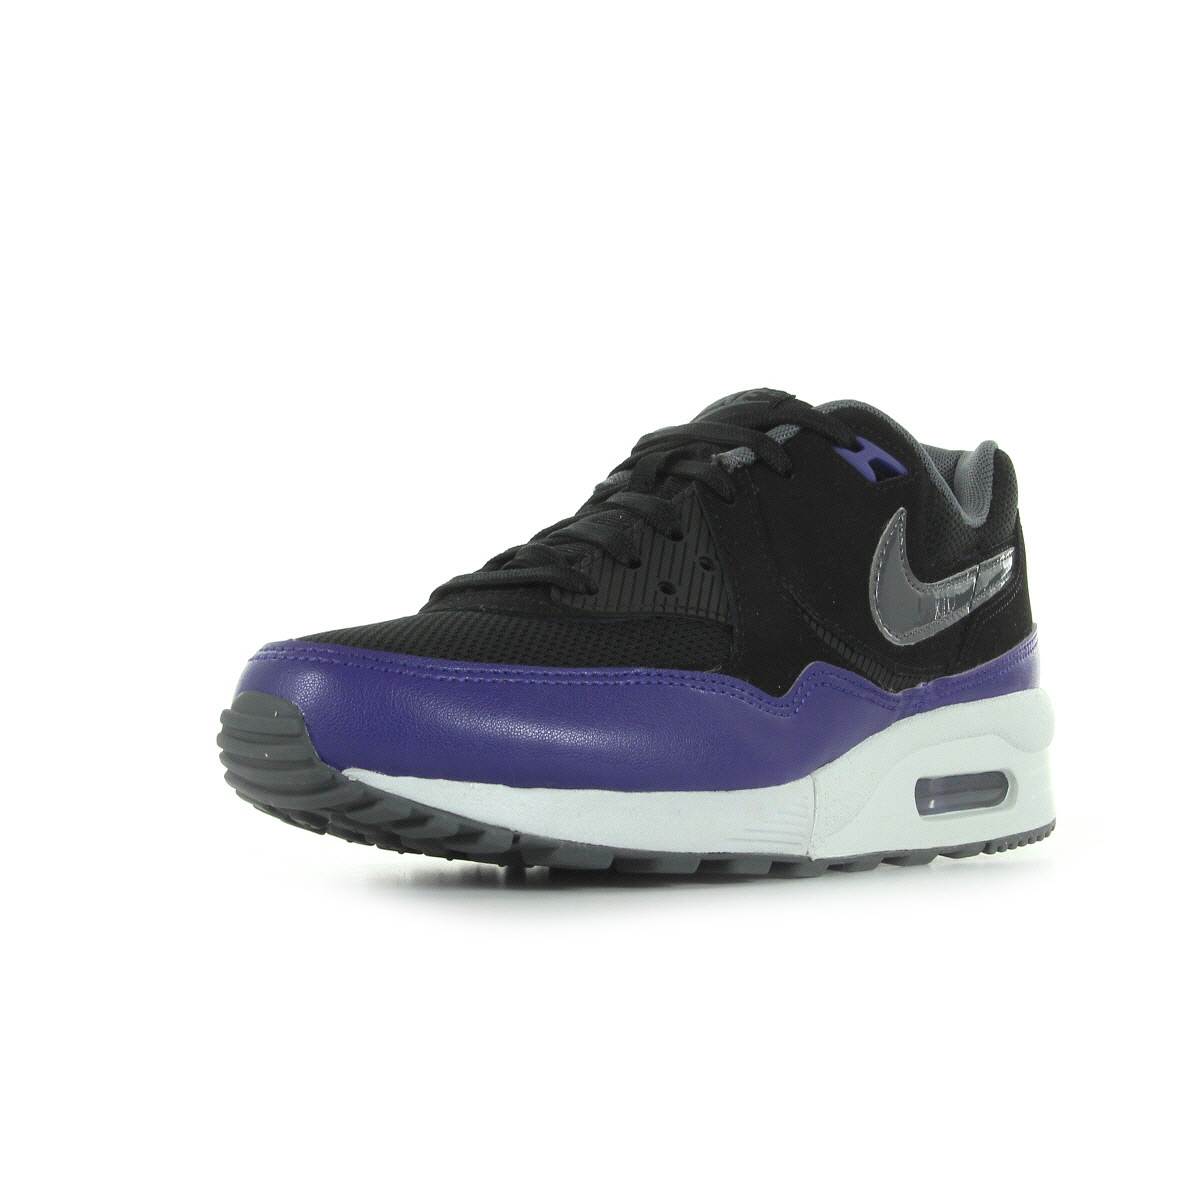 Nike Air Max Light Essential 624725006, Baskets mode femme